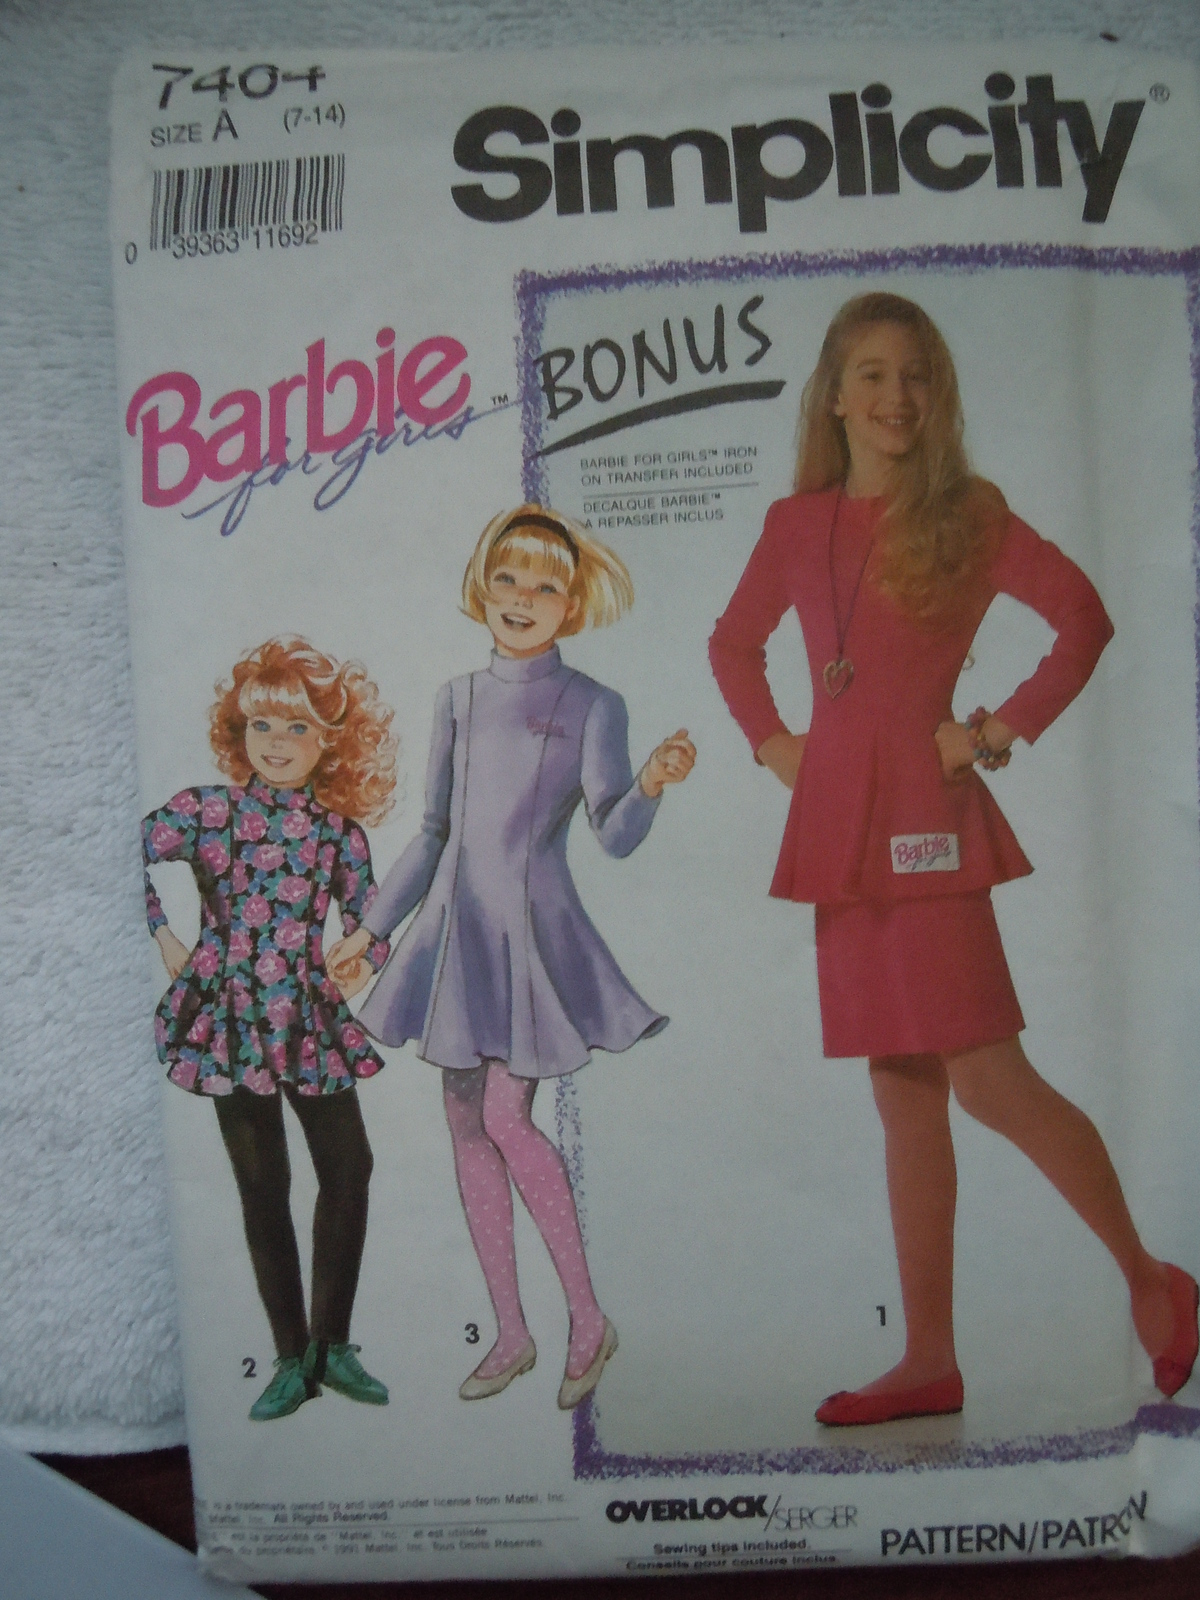 Primary image for Simplicity Barbie for Girls Size 7-14 Pants Skirt Dress Top #7464 Uncut